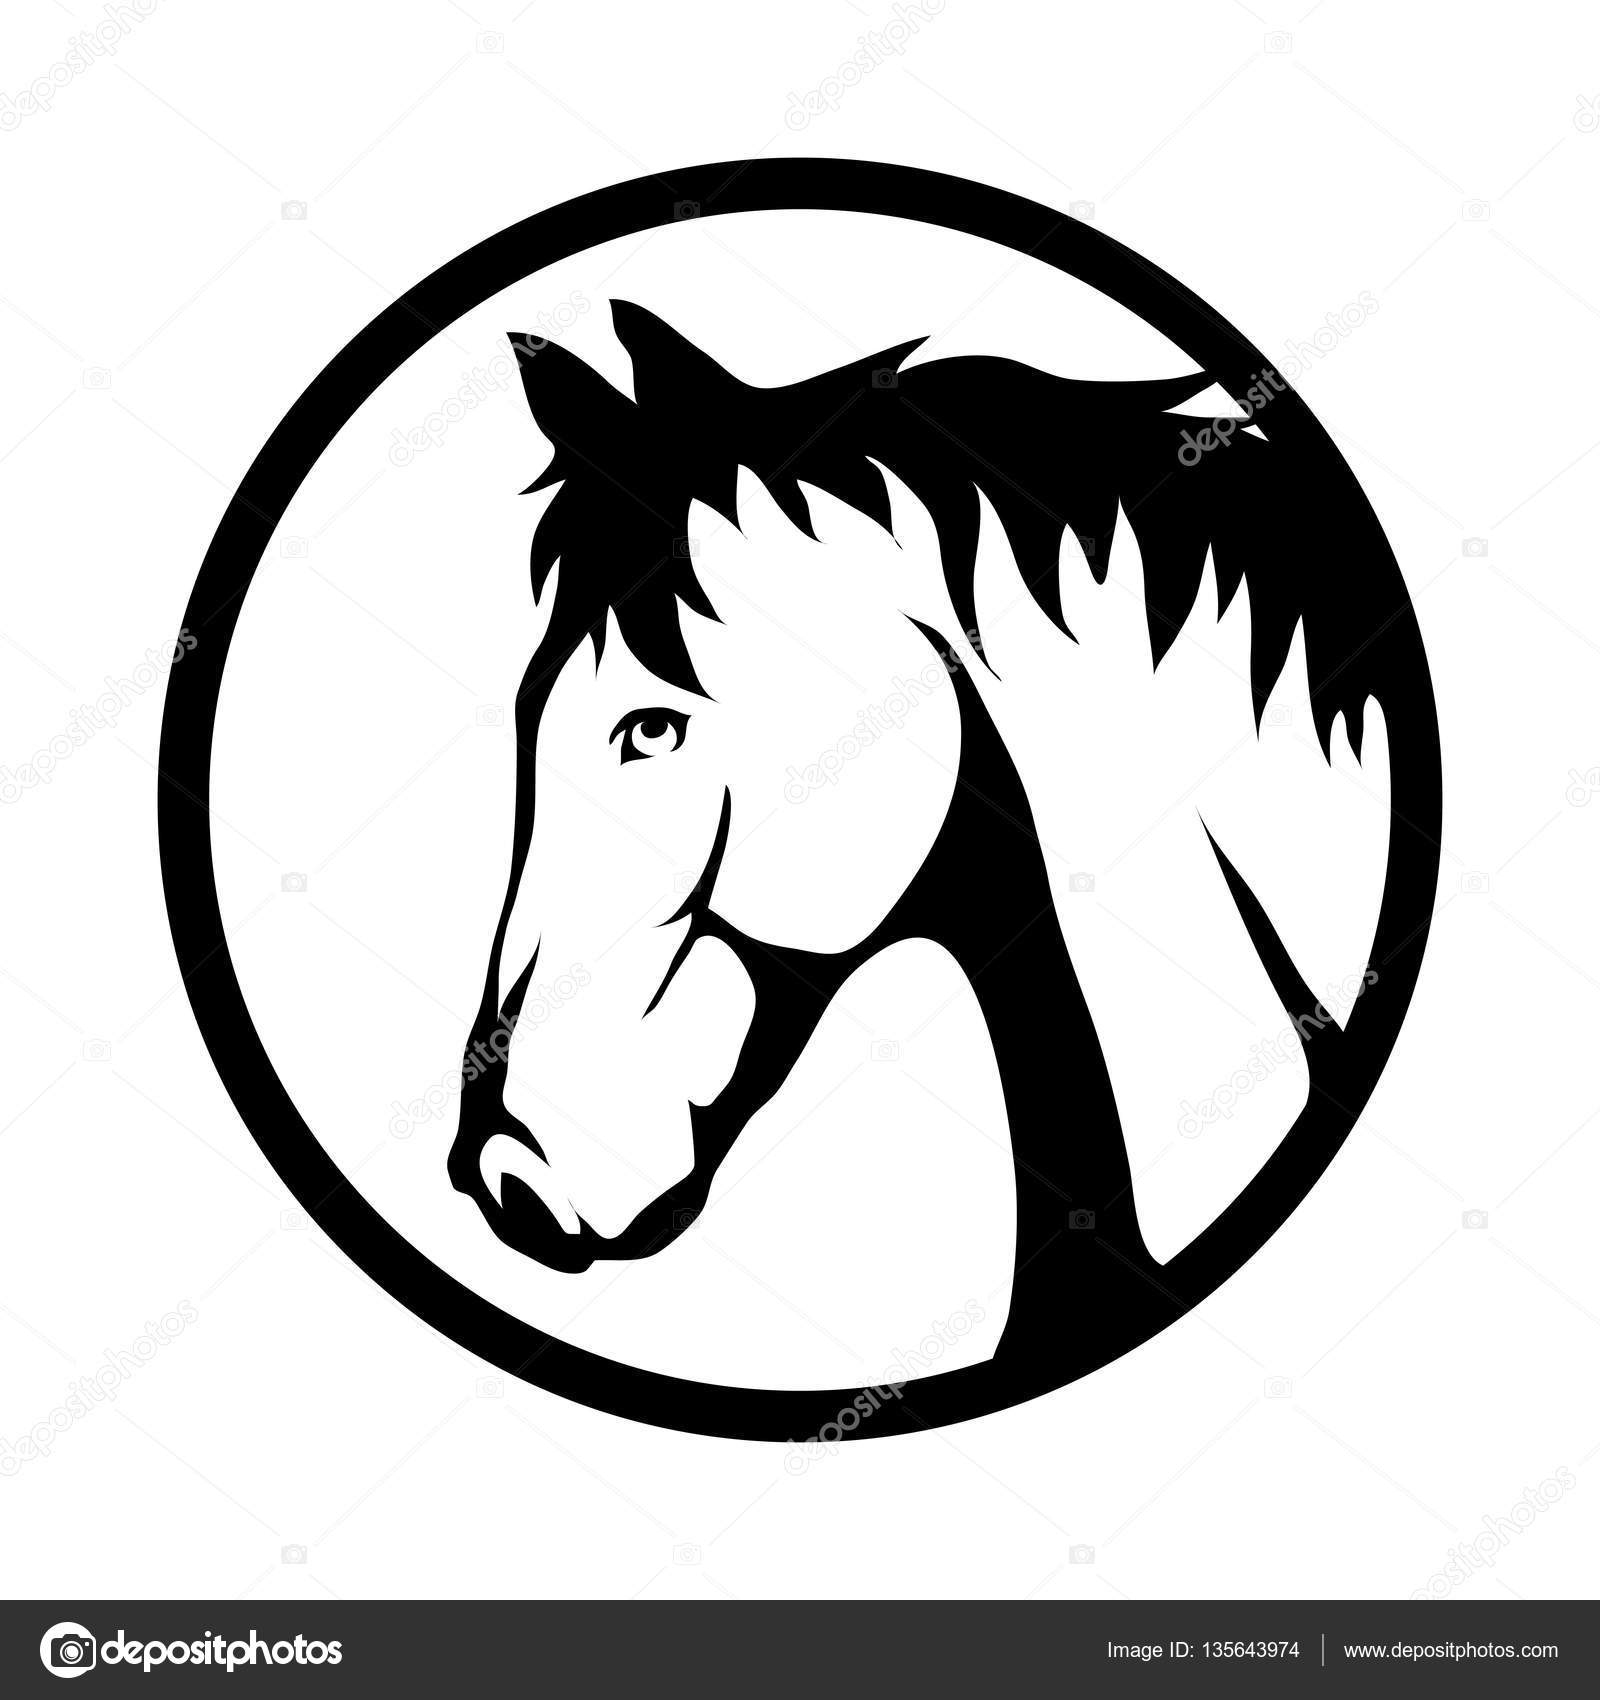 horse head logo stock vector korniakovstock gmail com 135643974 rh depositphotos com horse head logo designs horse head logos for trailers